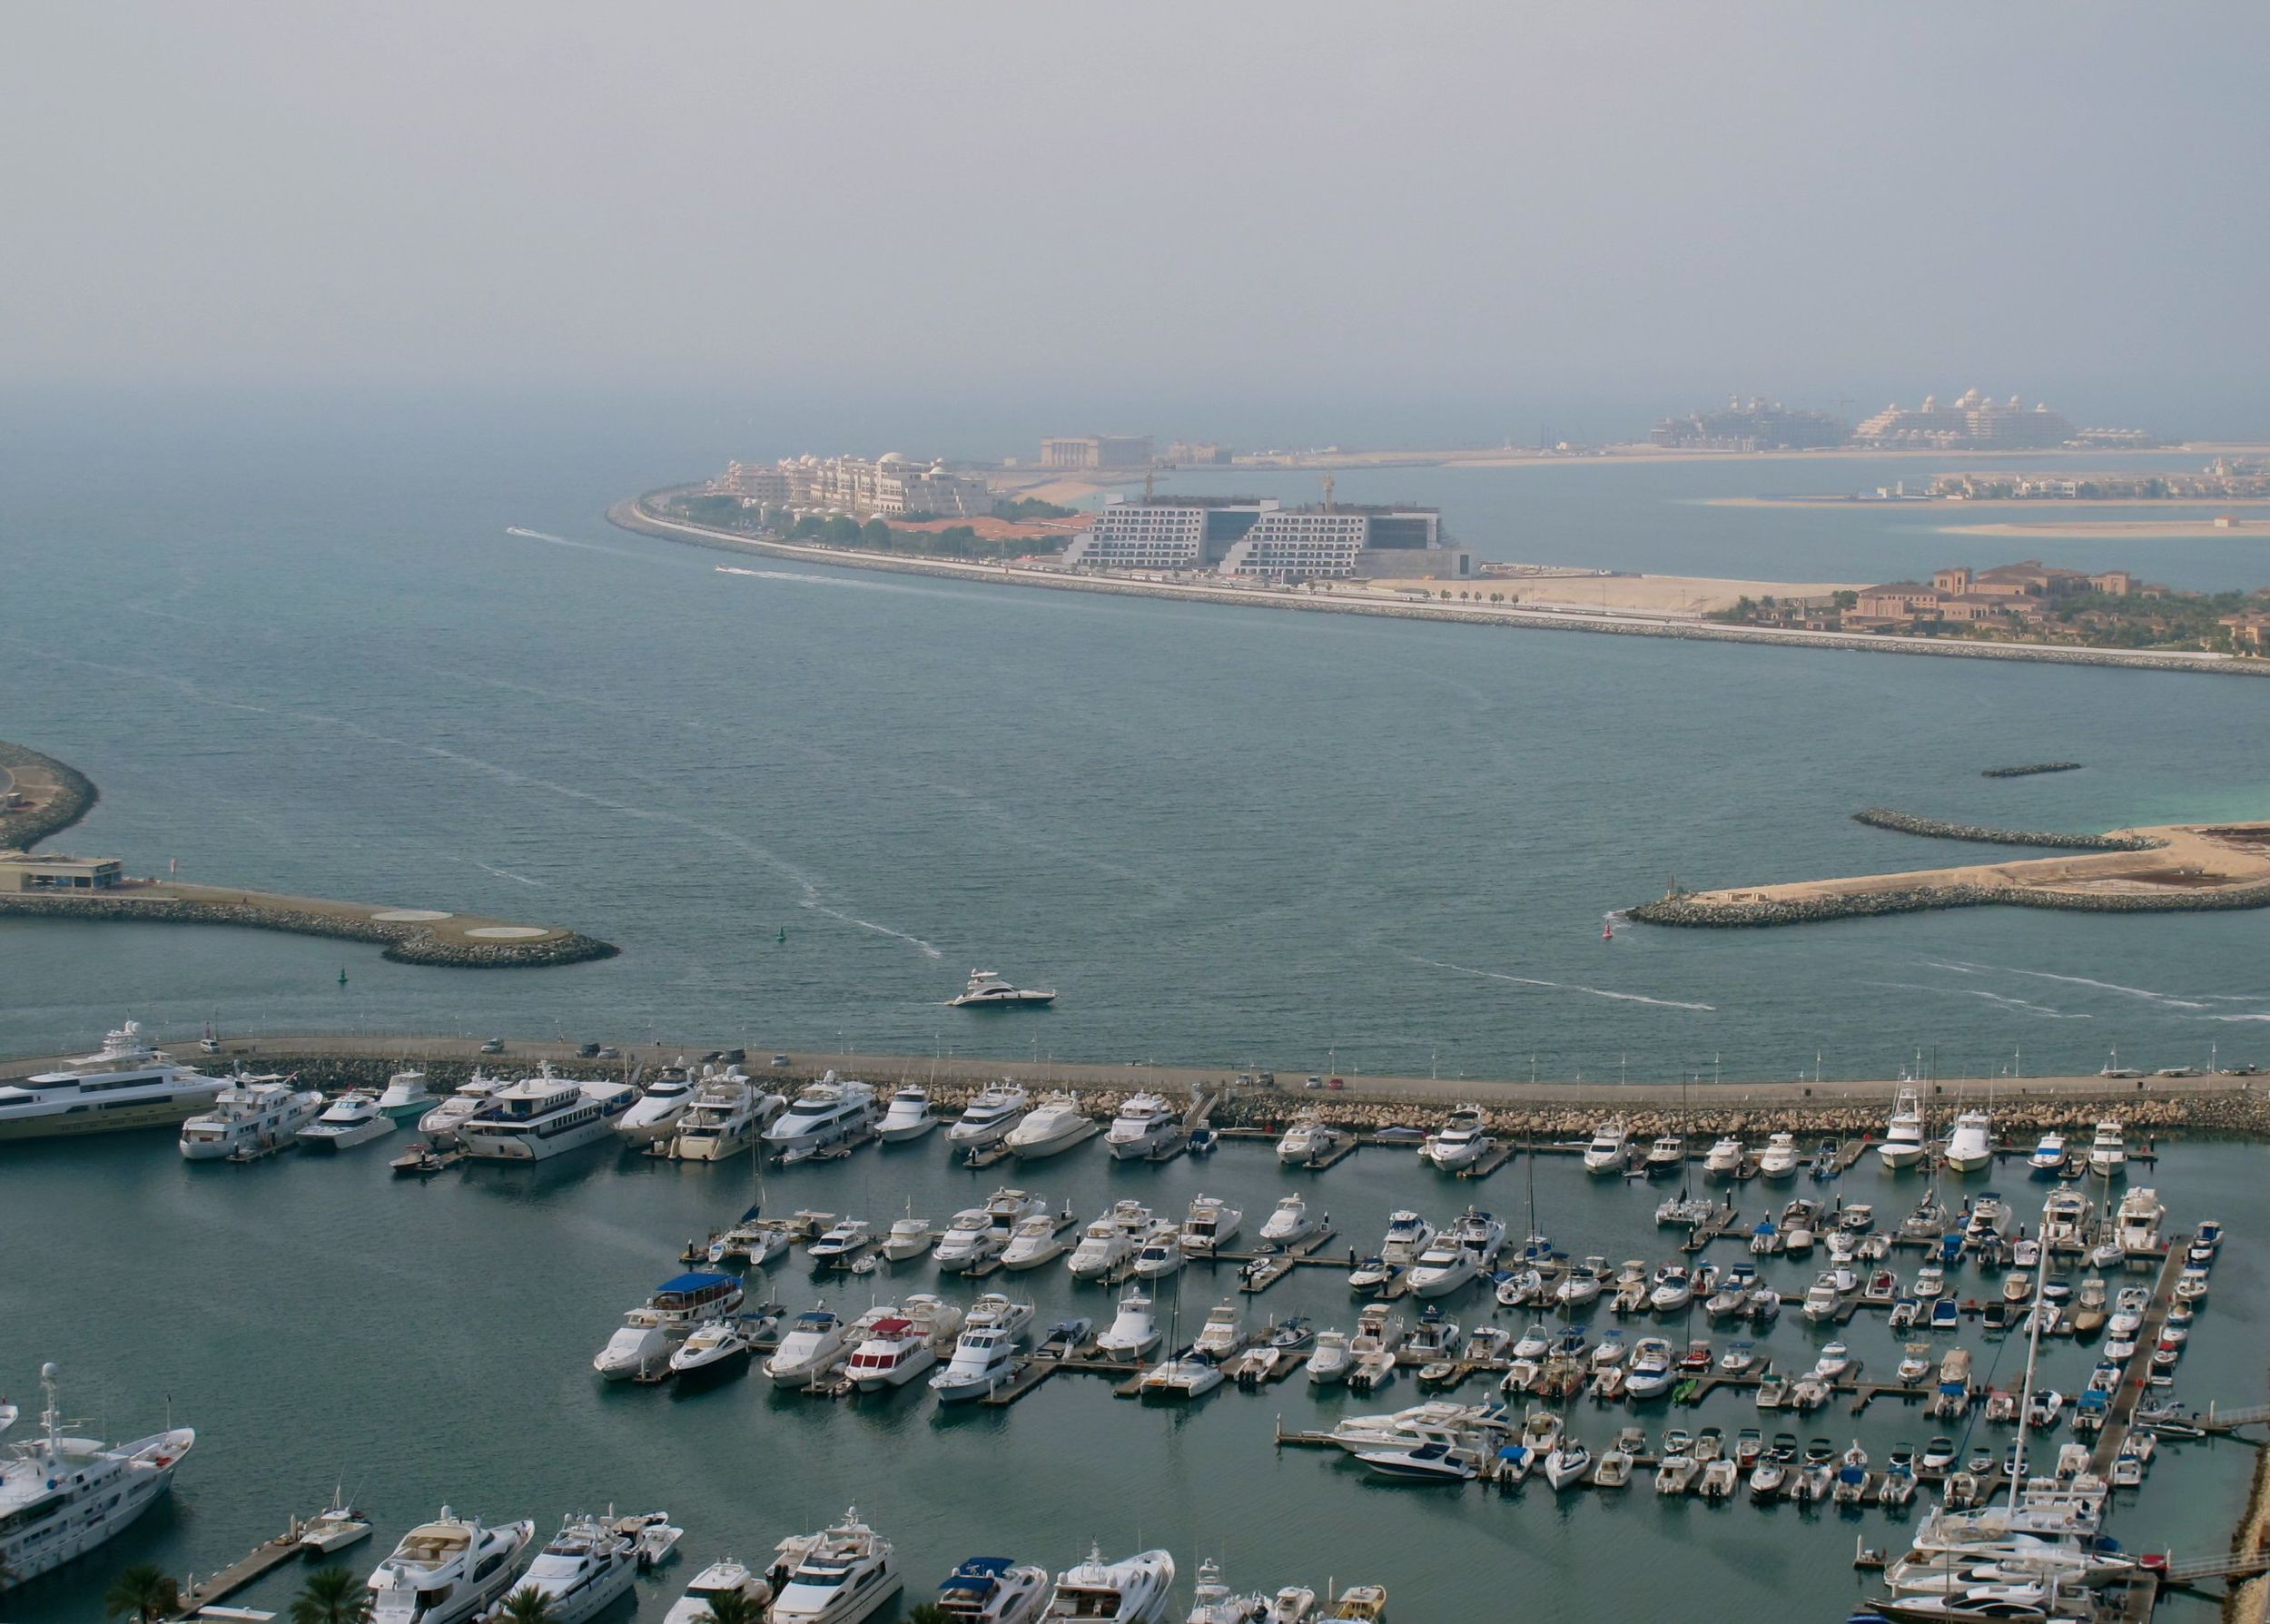 Beyond the marina, you can see the ring encircling Palm Jumeirah Island.